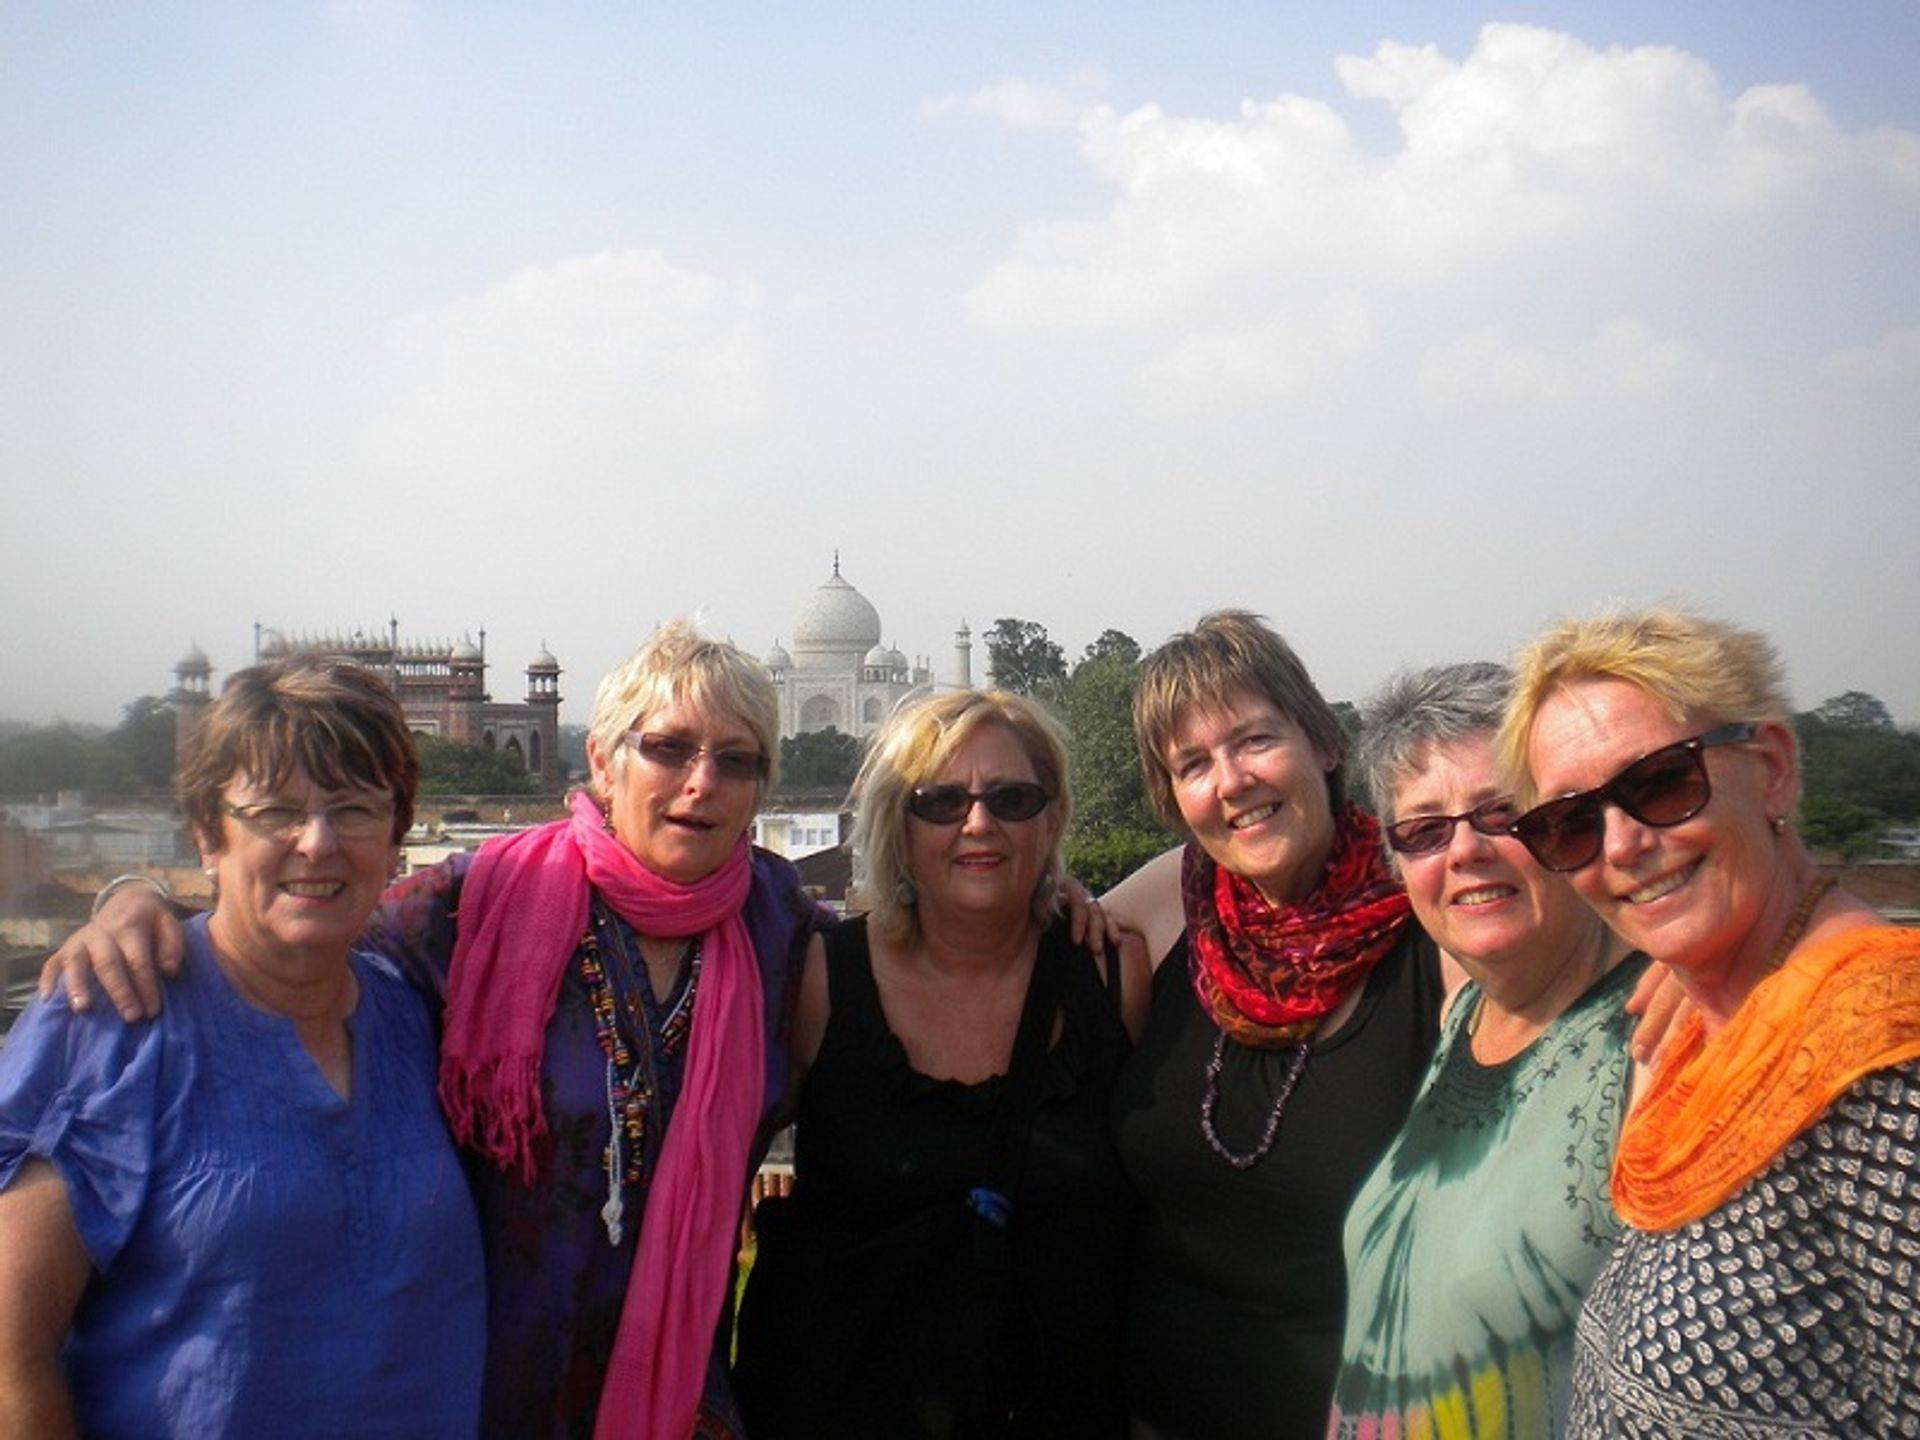 alt= Travel group in front of Taj mahal, Agra, India